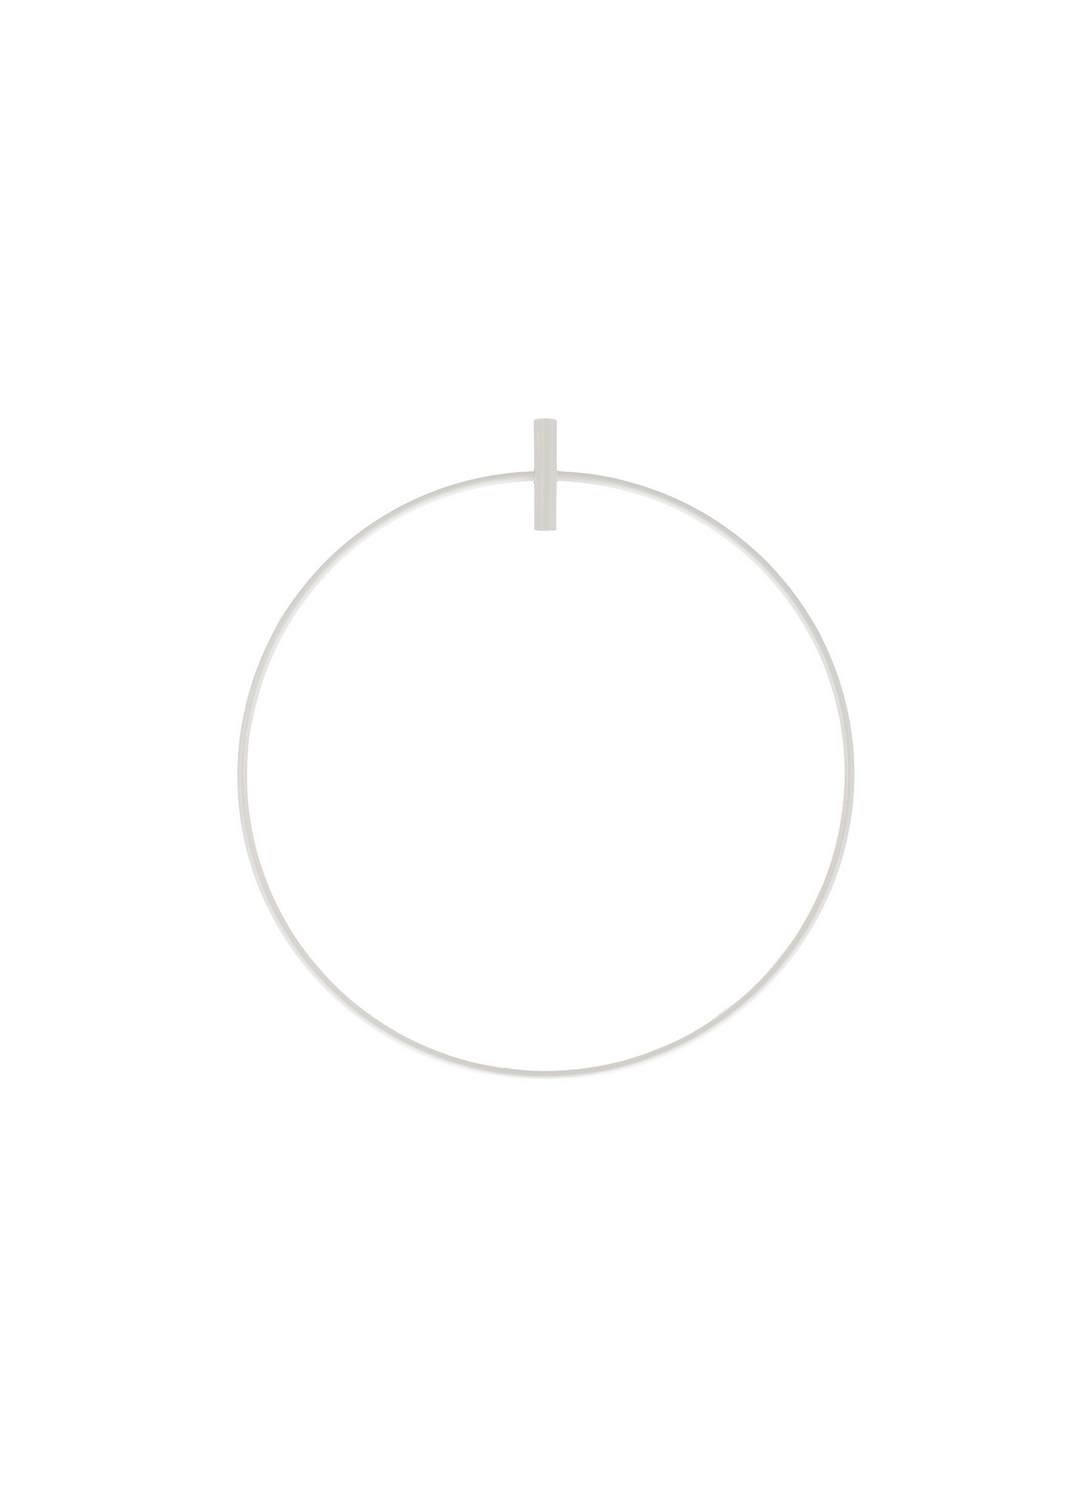 Cricular Frame For Line Voltage Pendant from the Locus collection by Tech Lighting 700LOCUSR23W